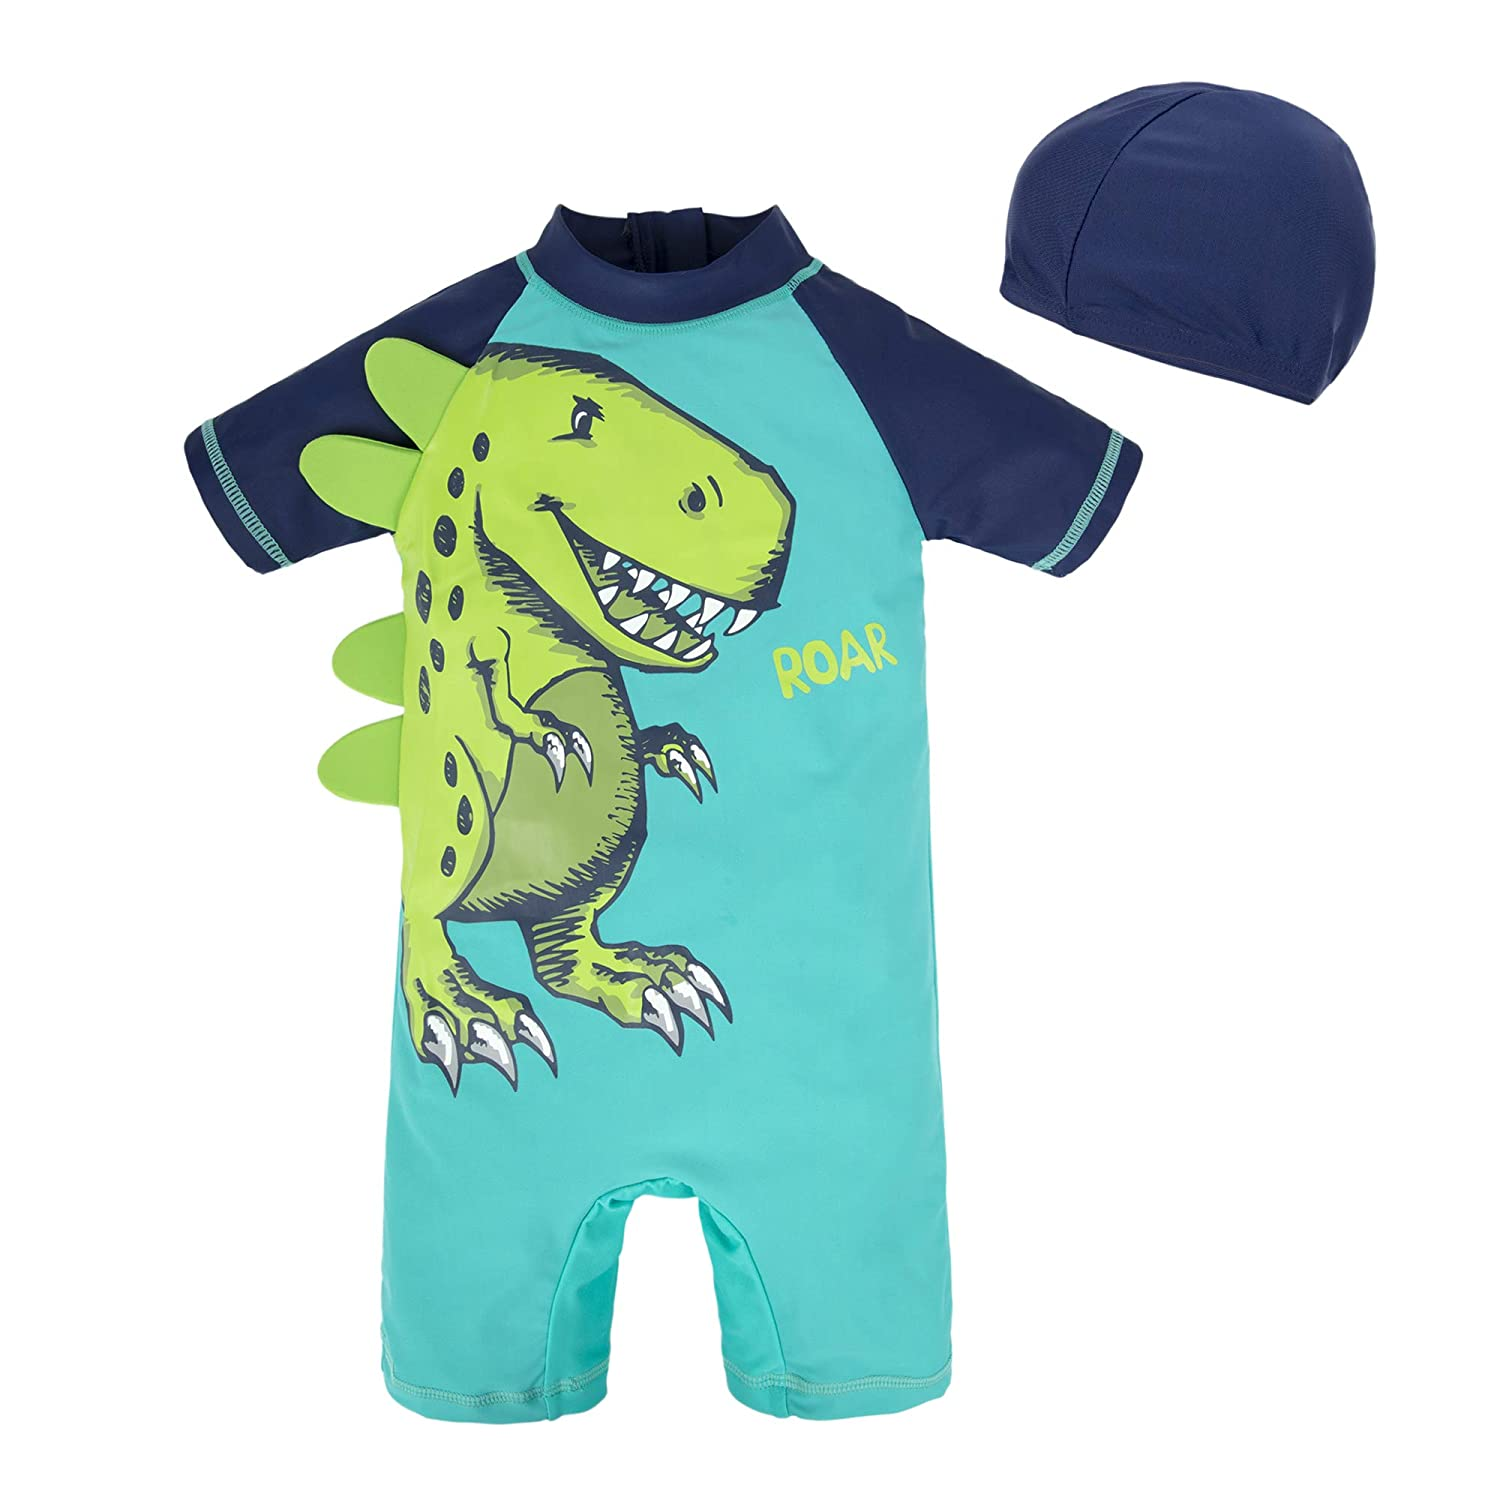 BIG ELEPHANT Kids Baby Boys Anti UV All-in-One Sun Protection Swimming Suit Clothes with Hat Q66